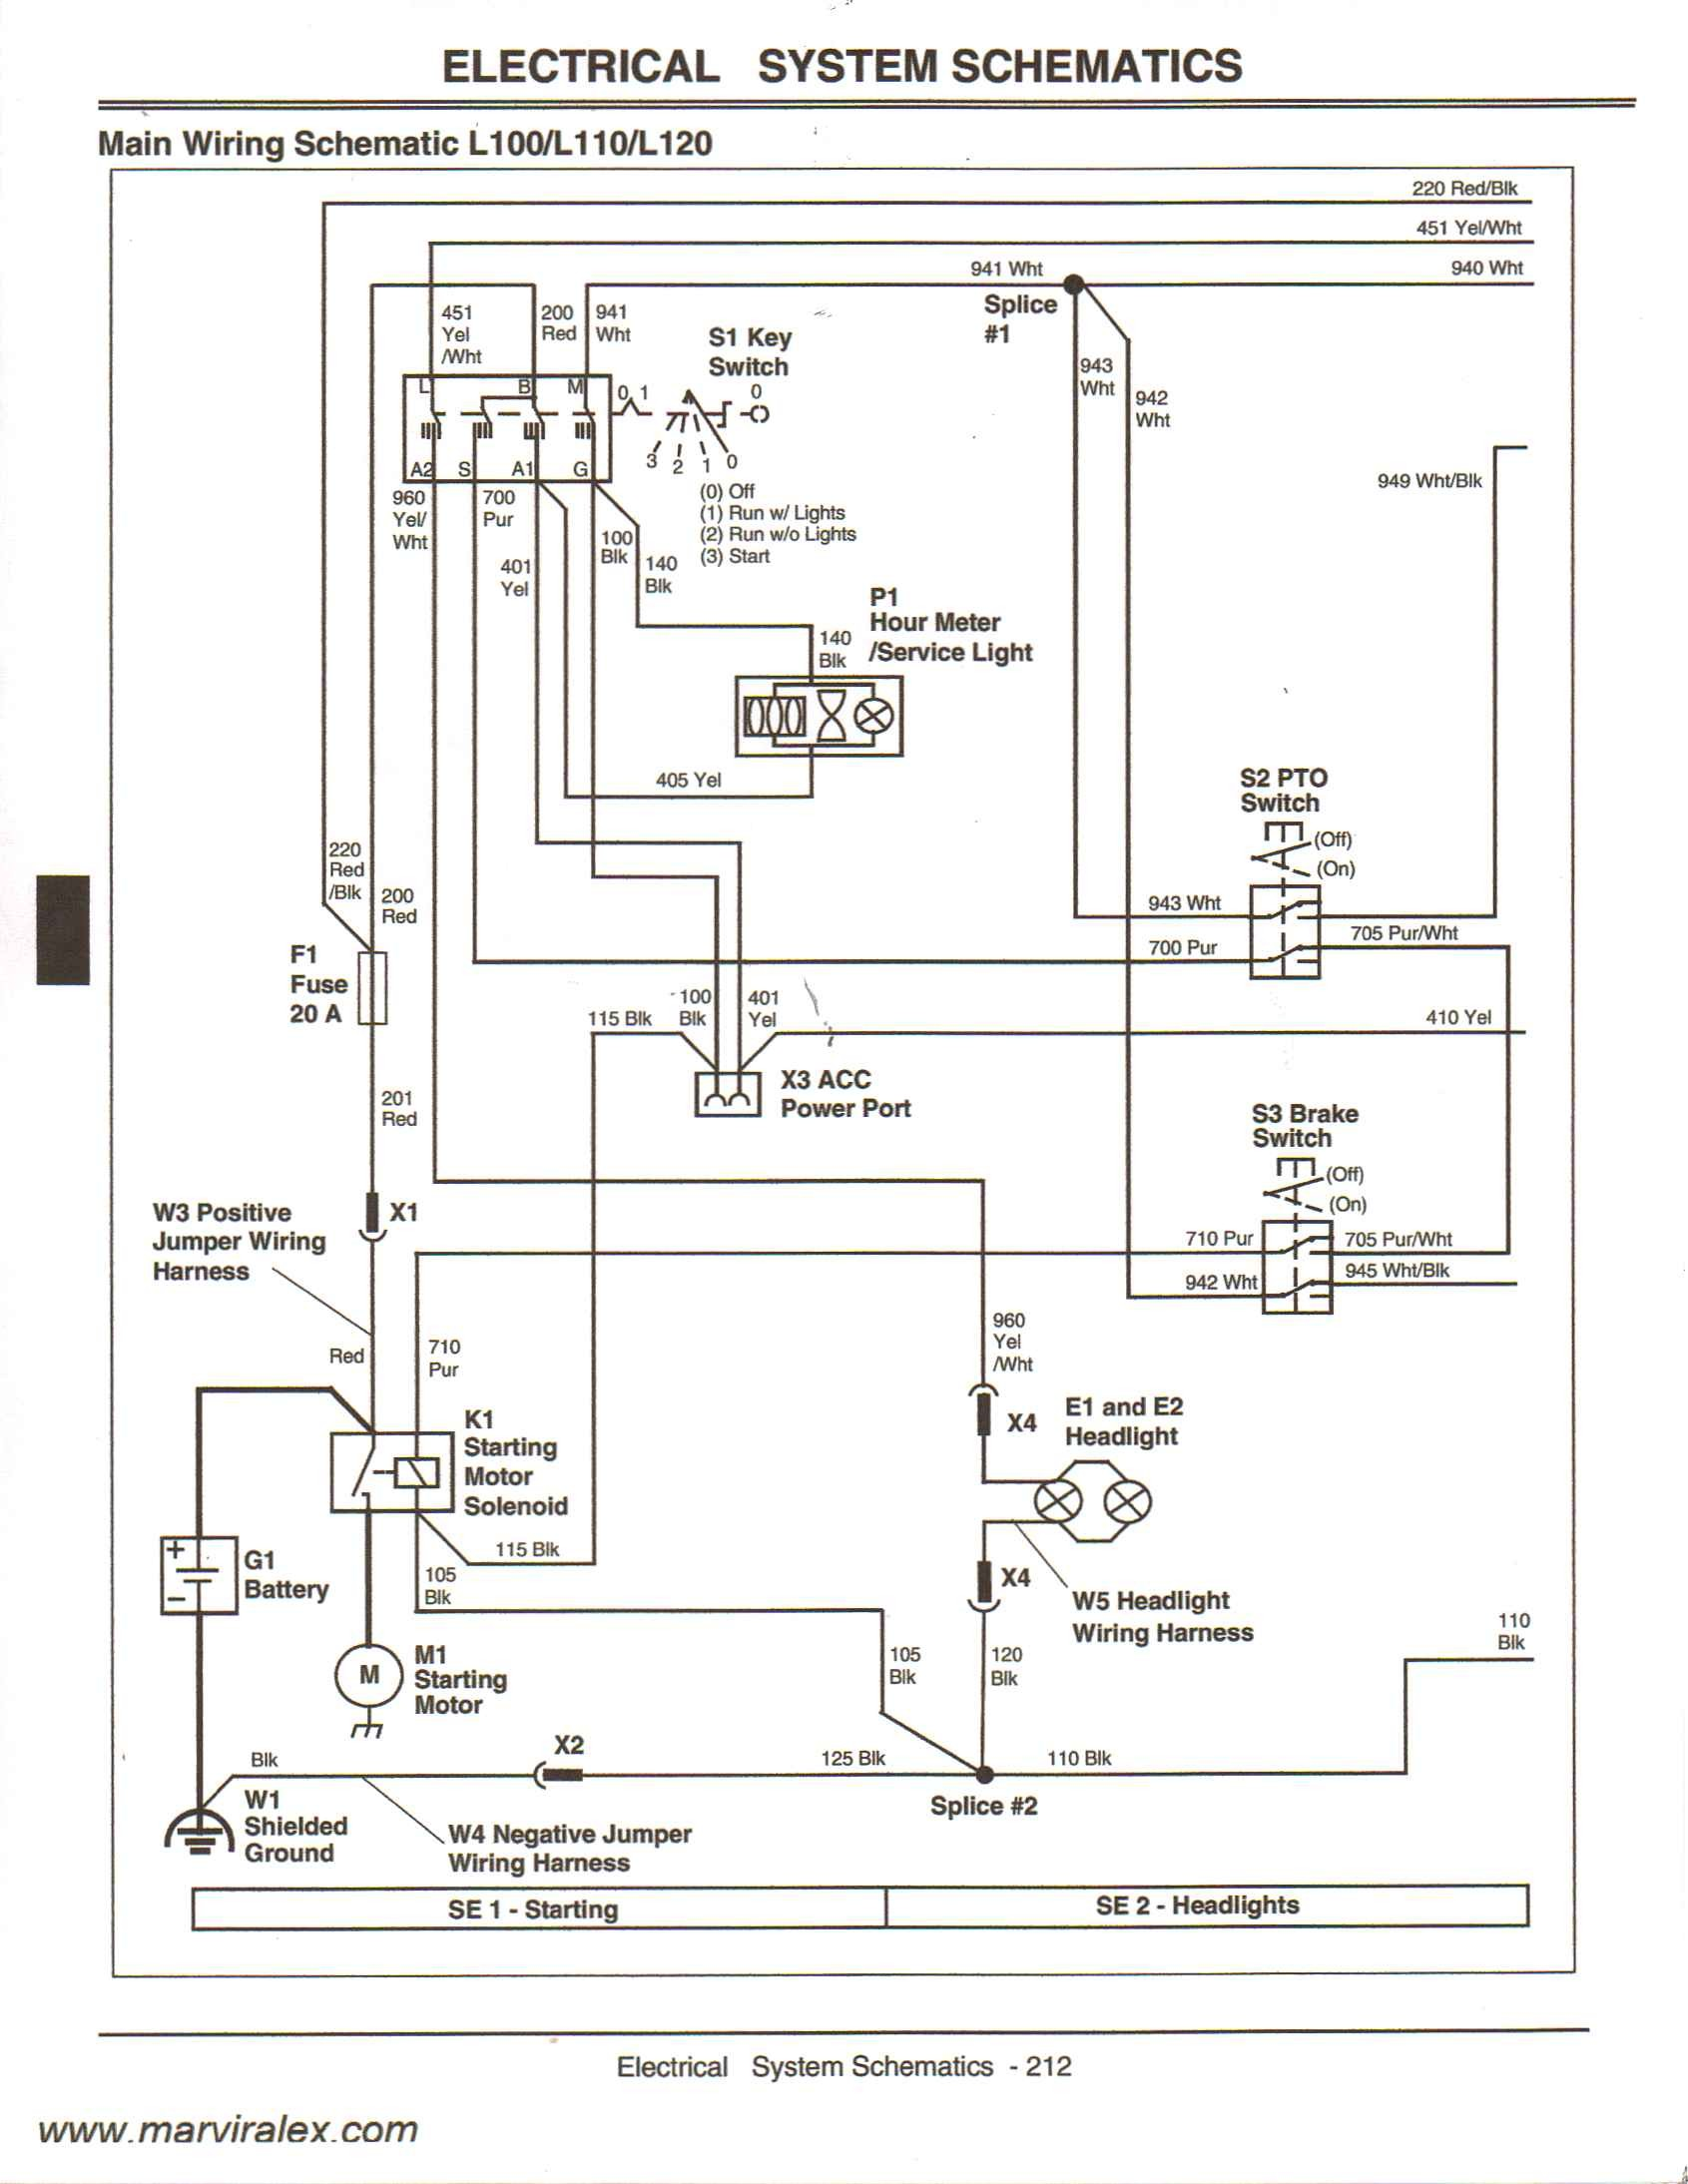 John Deere Electrical Schematic Pto Switch Wiringagram Pdf Ignition 318 Wiring Diagram Dimension 1920